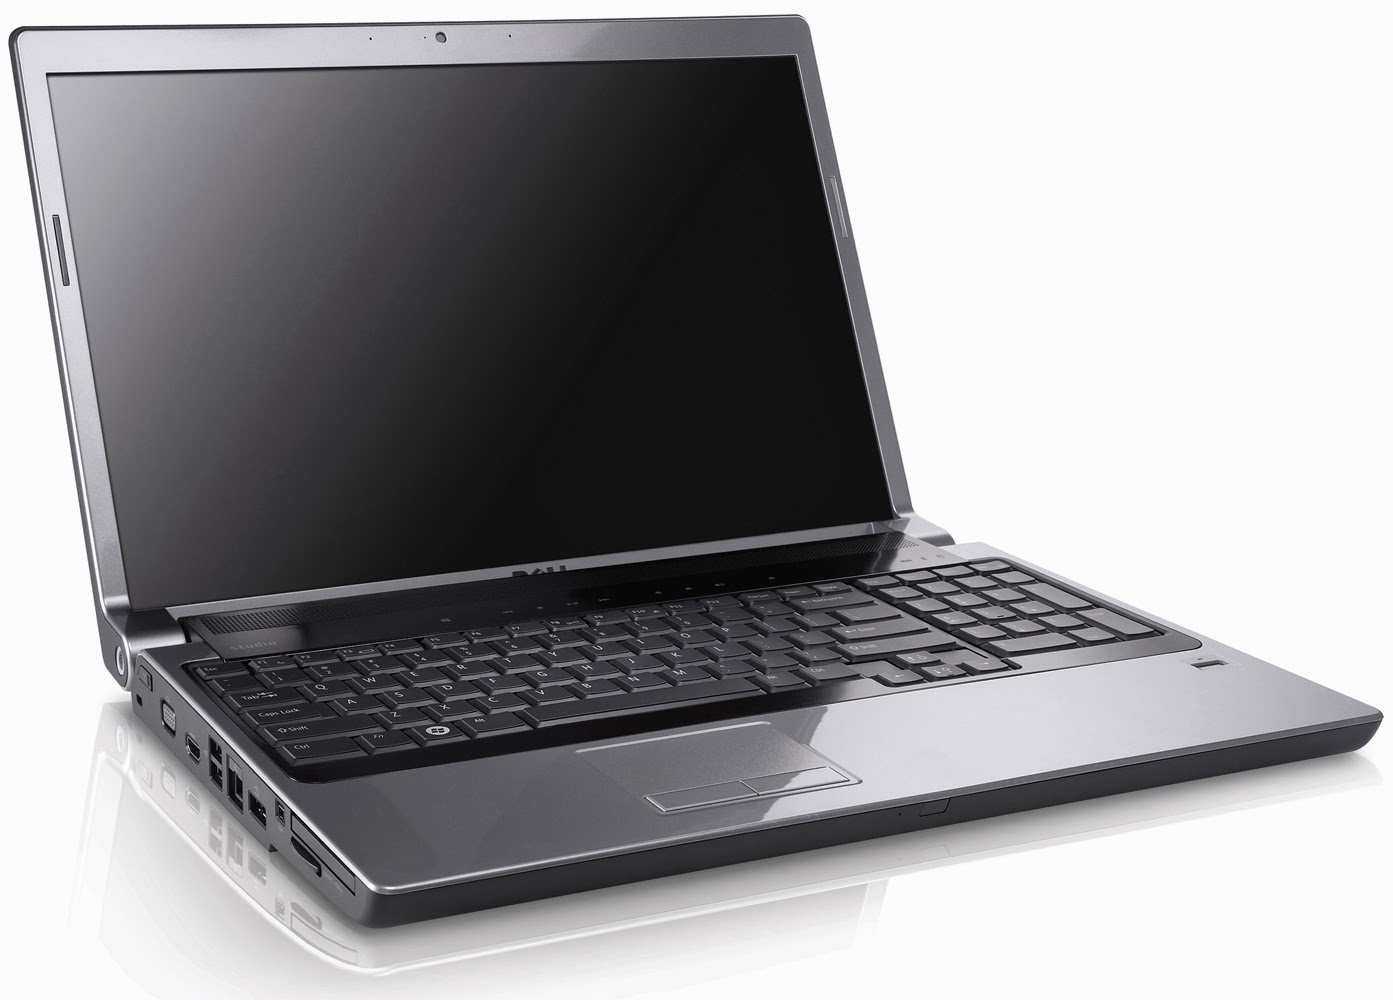 Dell Studio 1735 Laptop Schematic Diagramgm3